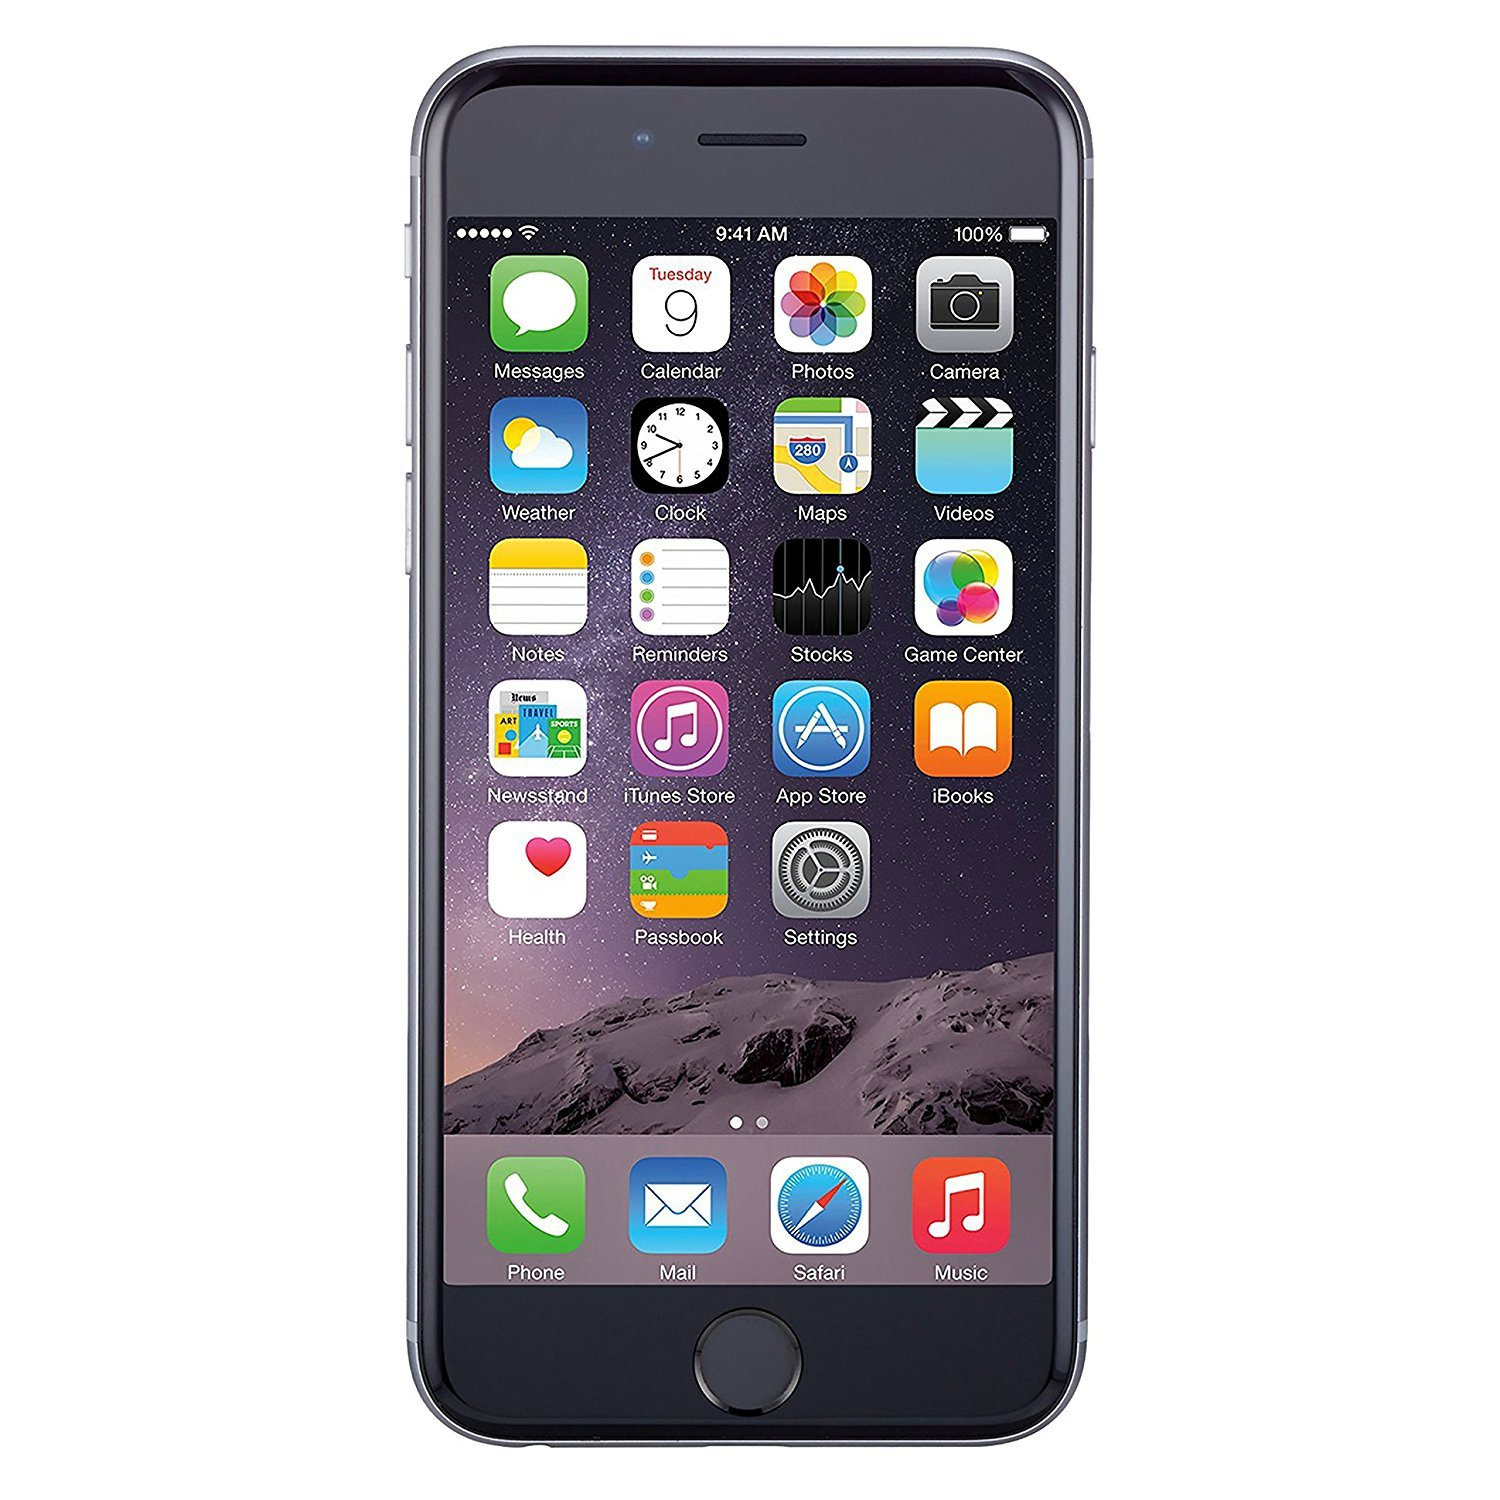 Apple iPhone 6 GSM Unlocked, 64 GB - Space Gray (Certified Refurbished)  by Apple (Image #1)